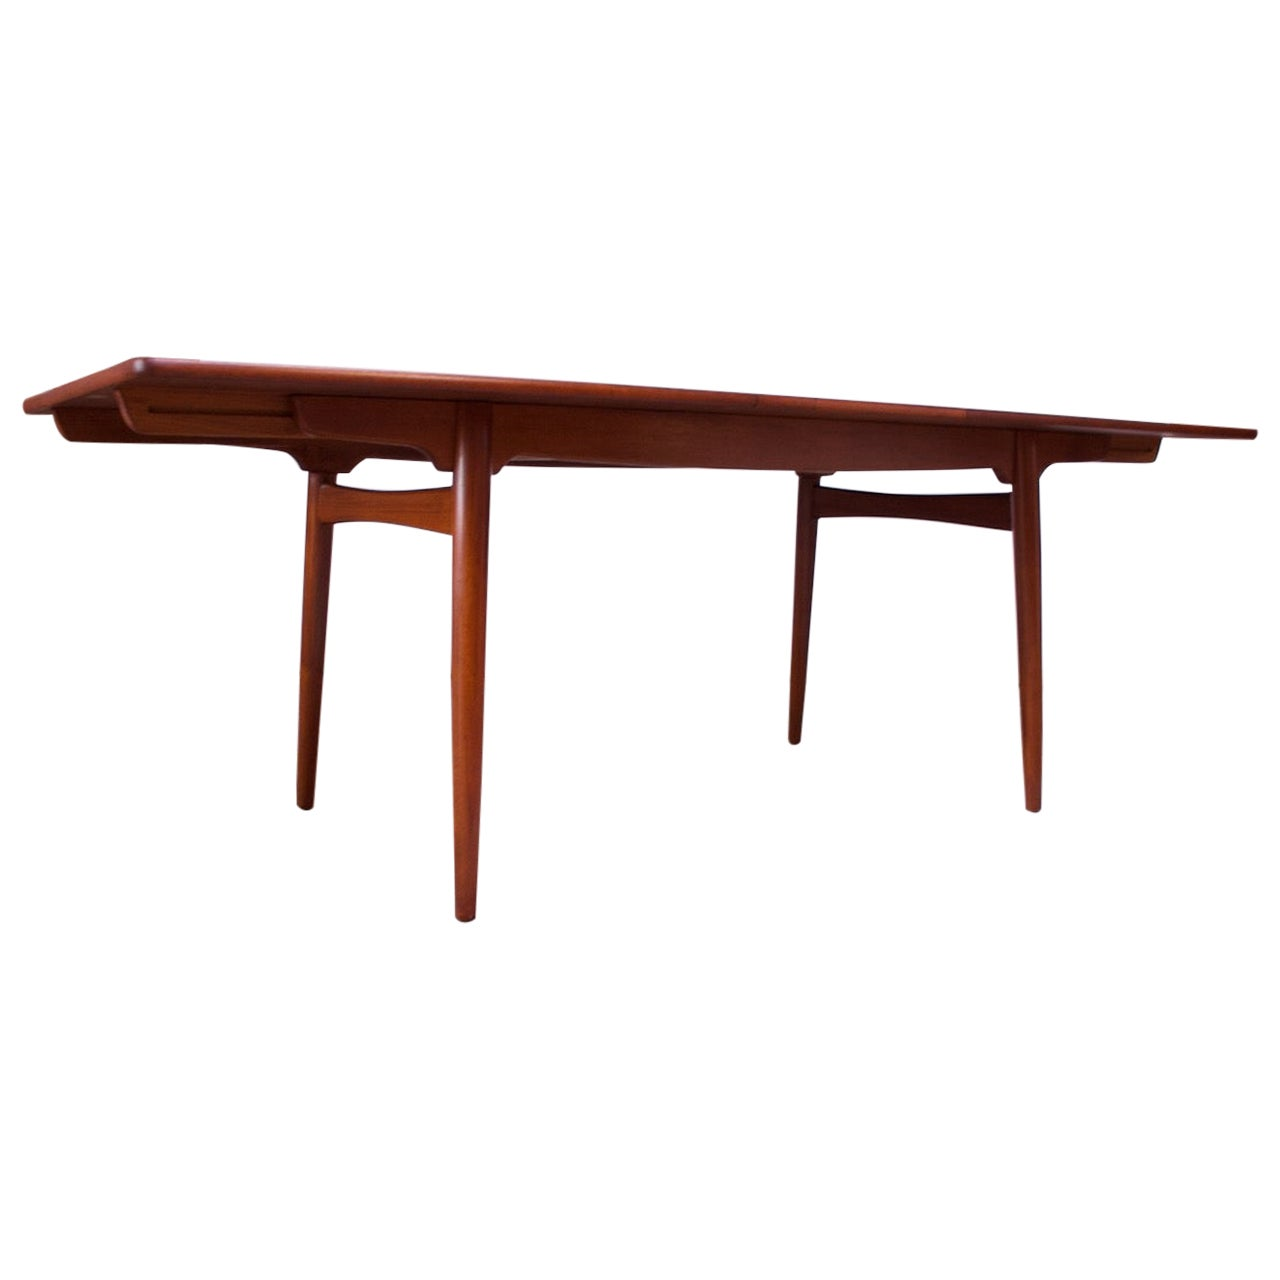 Hans Wegner for Andreas Tuck Teak Extension Dining Table